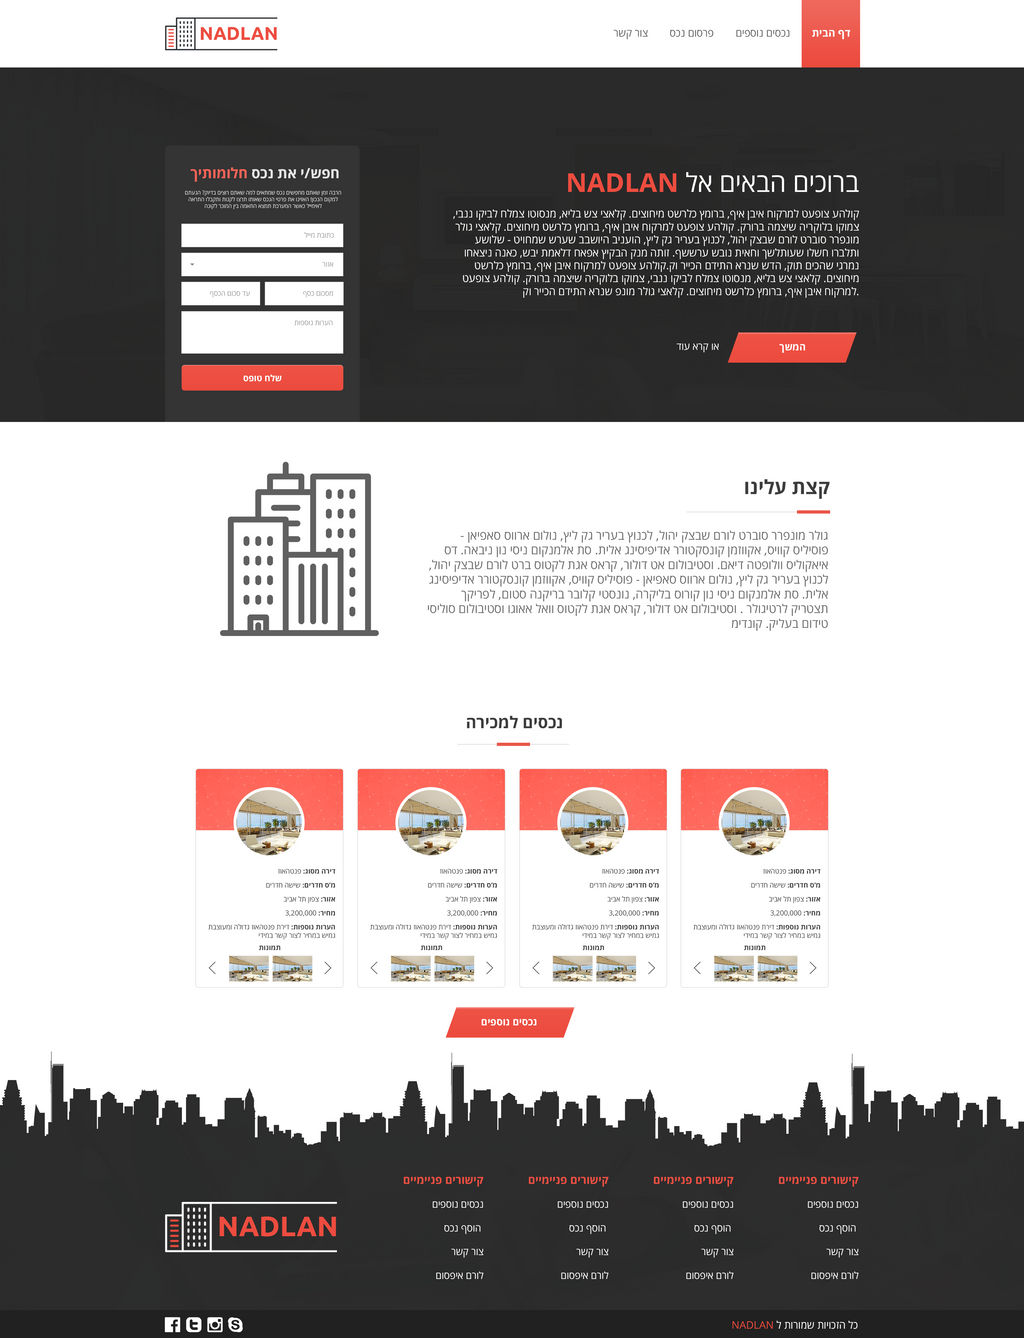 Nadlan - Website by LidaRR on DeviantArt